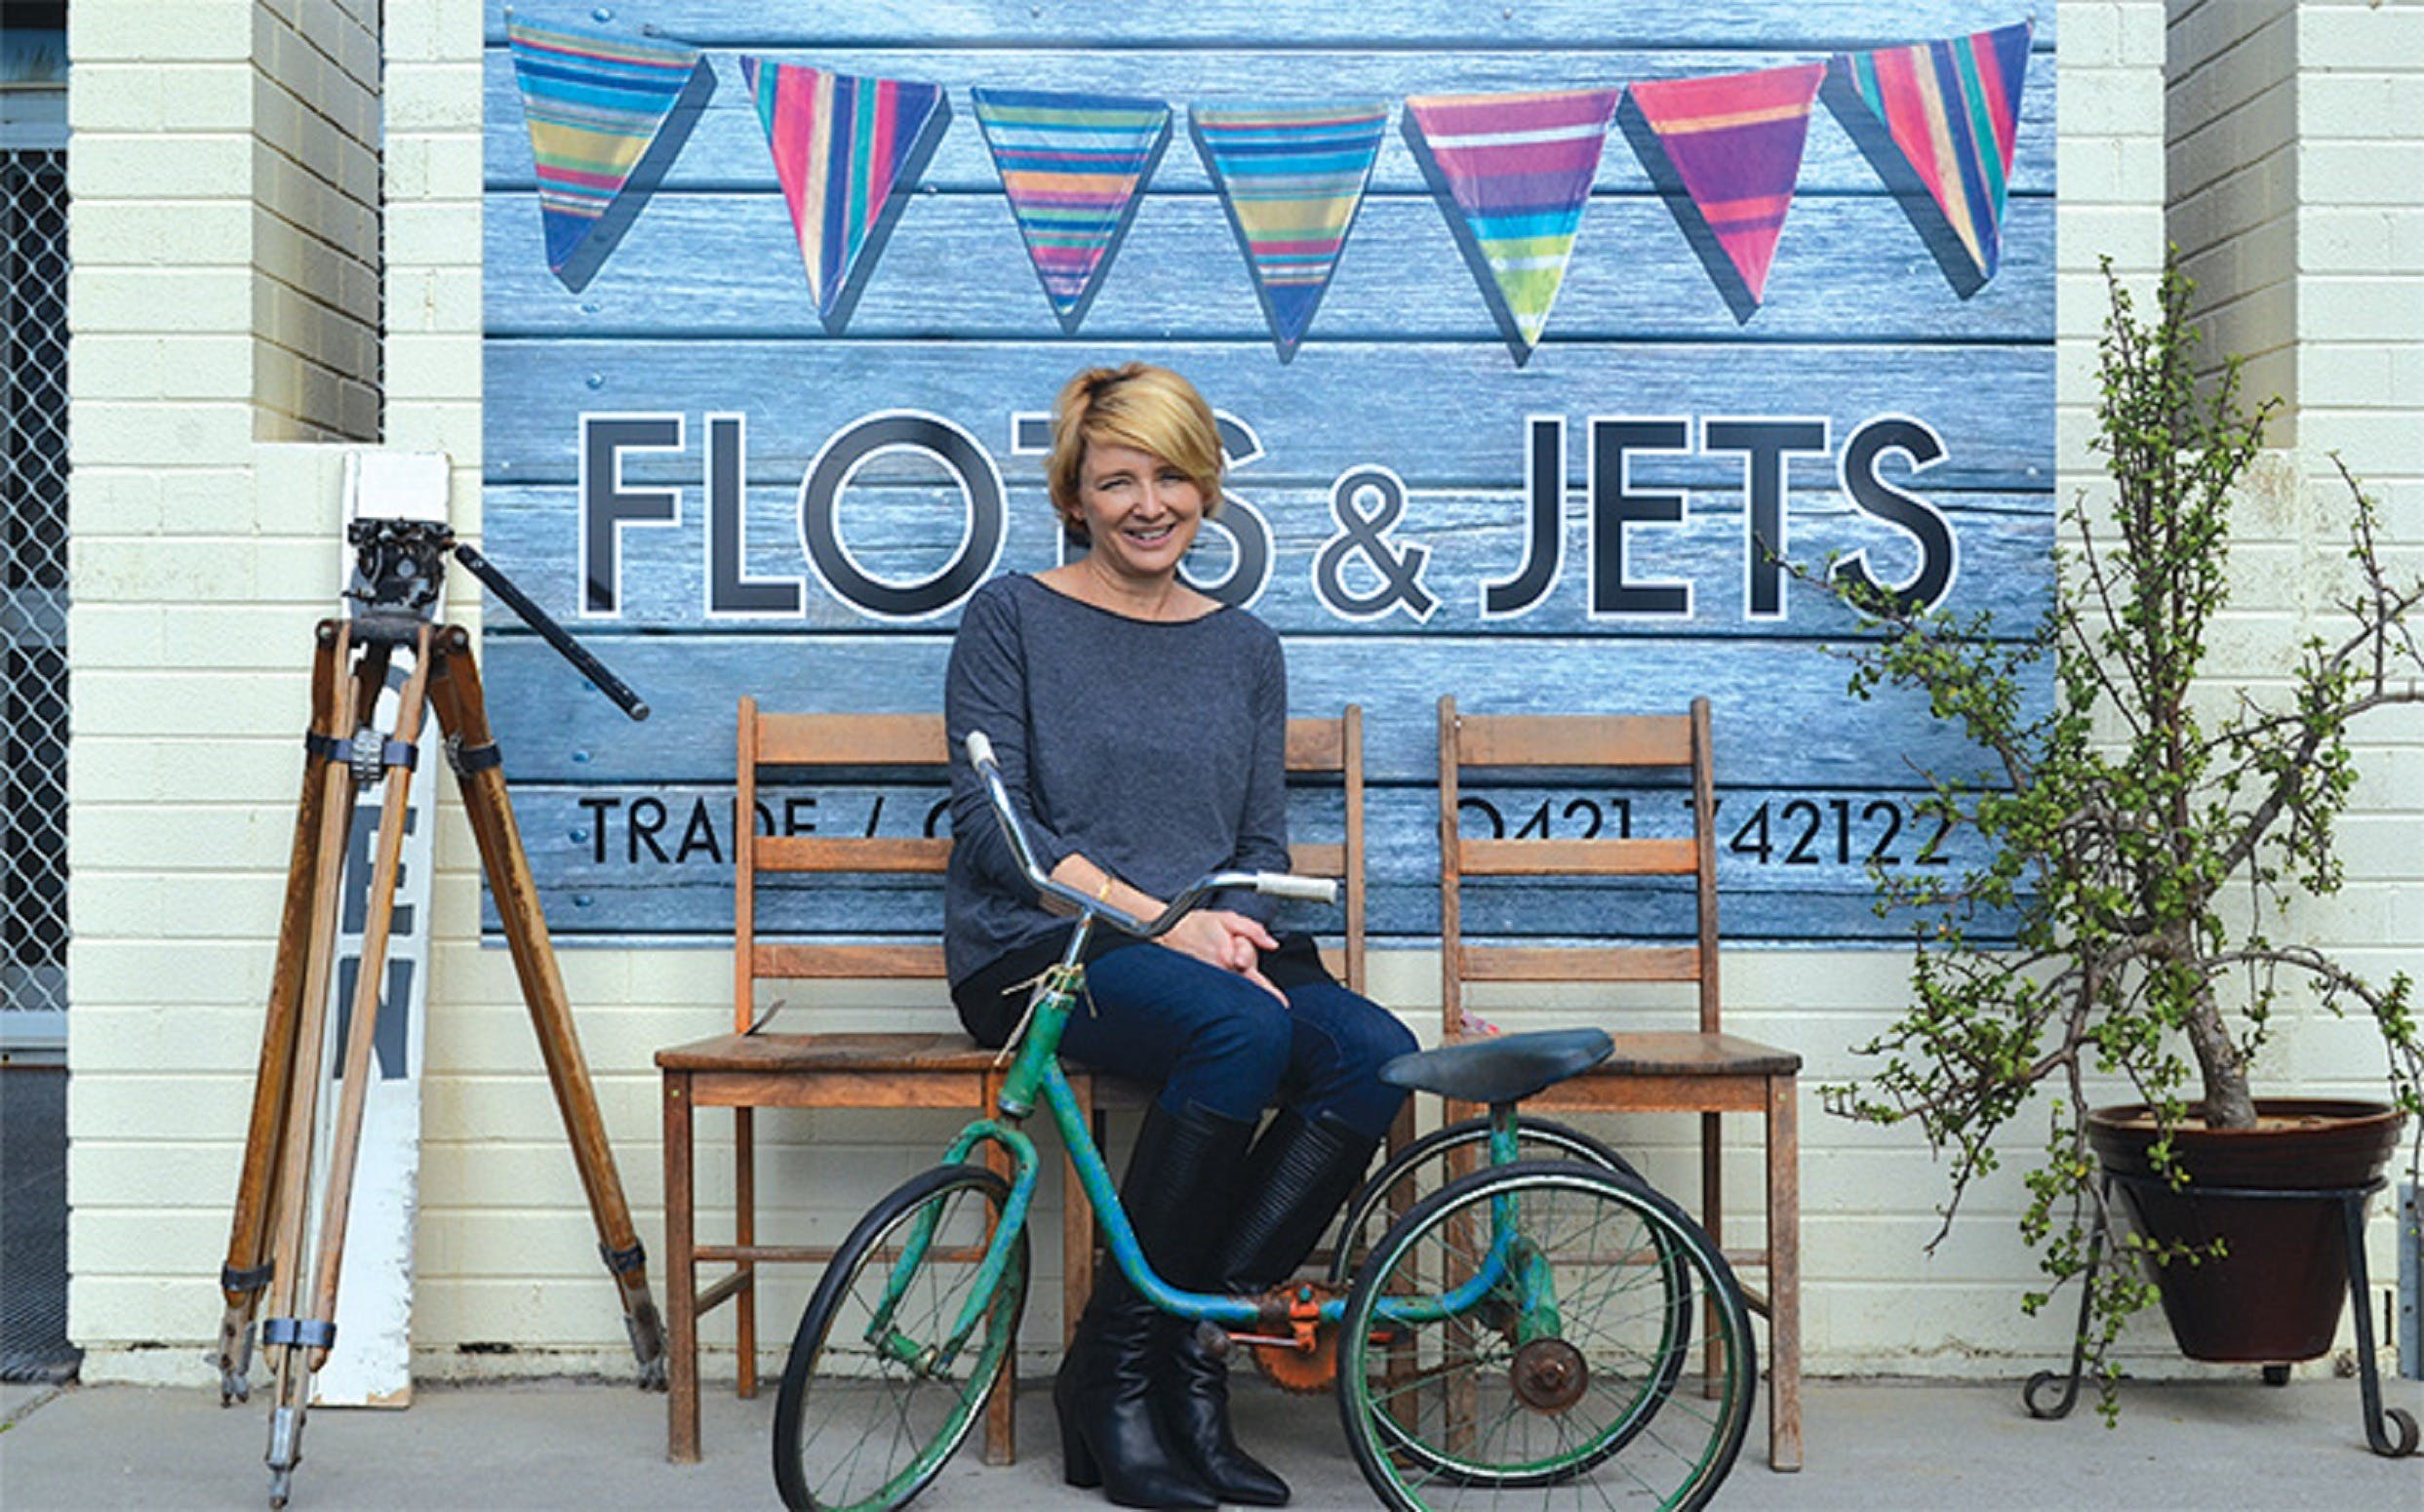 Flots and Jets - Victoria Tourism